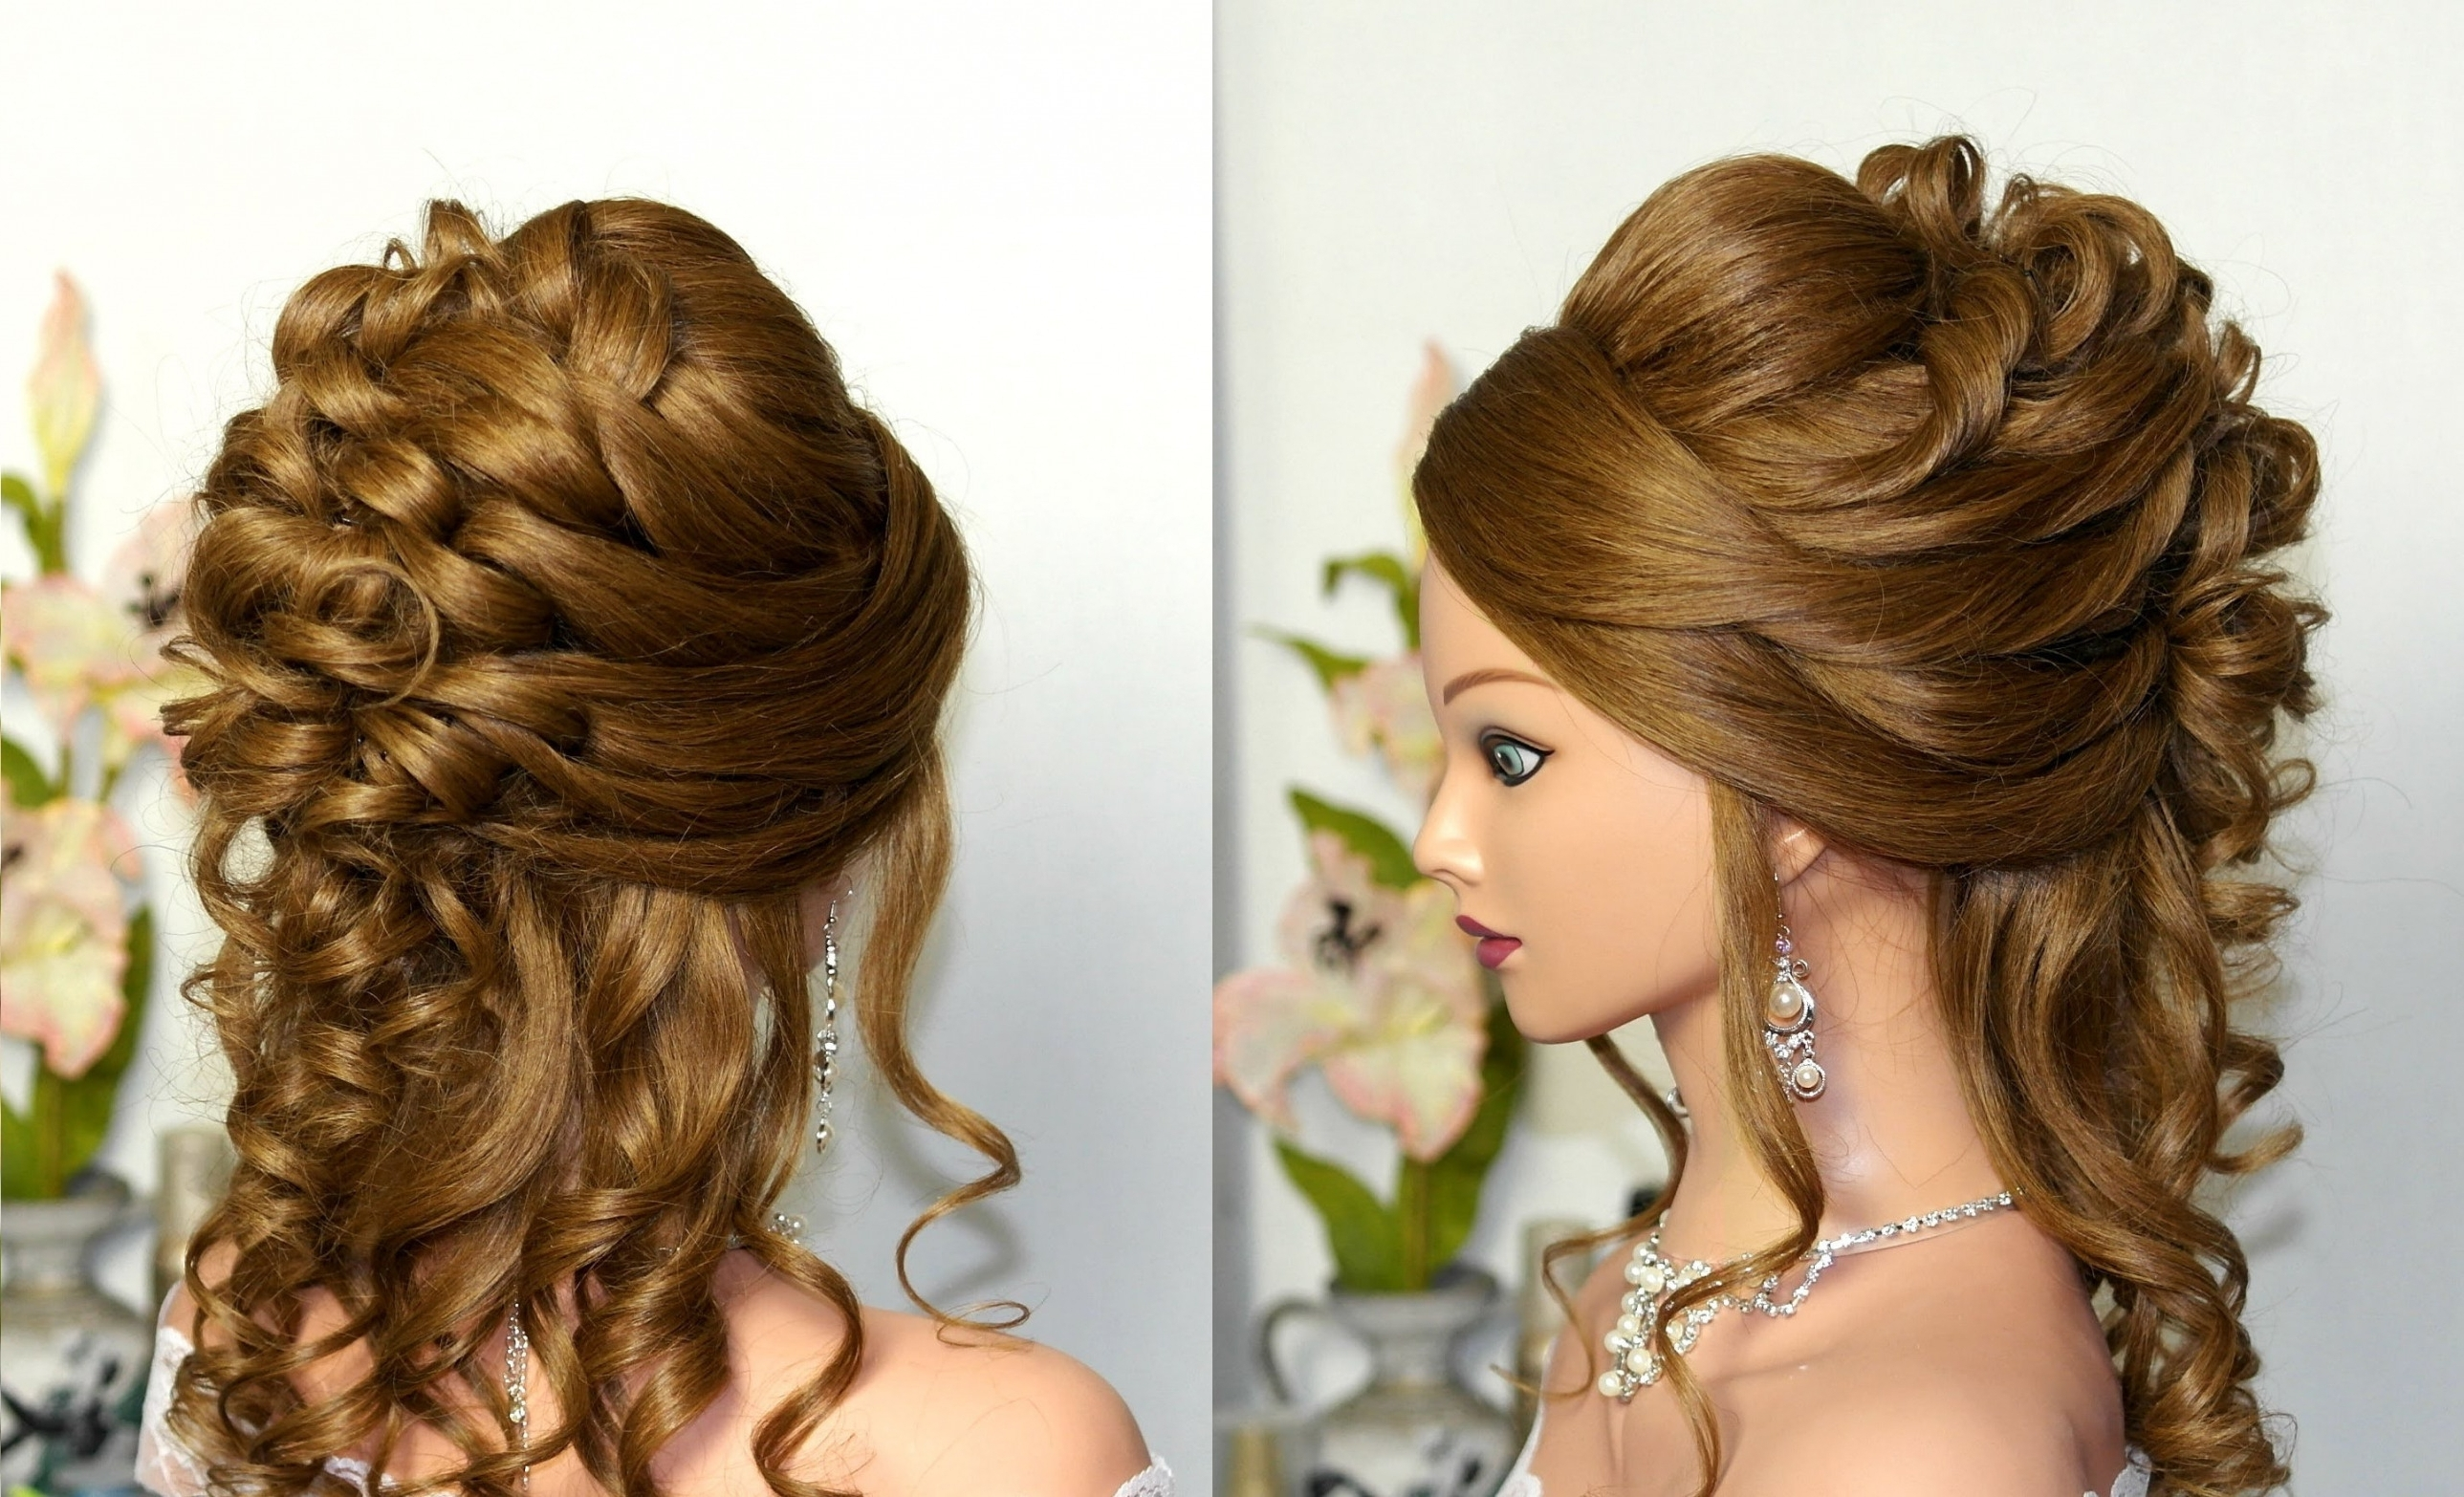 Hairstyle Design For Long Hair For Wedding Updo Long Curly Hair Updo Within Latest Wedding Updo Hairstyles For Long Curly Hair (View 6 of 15)